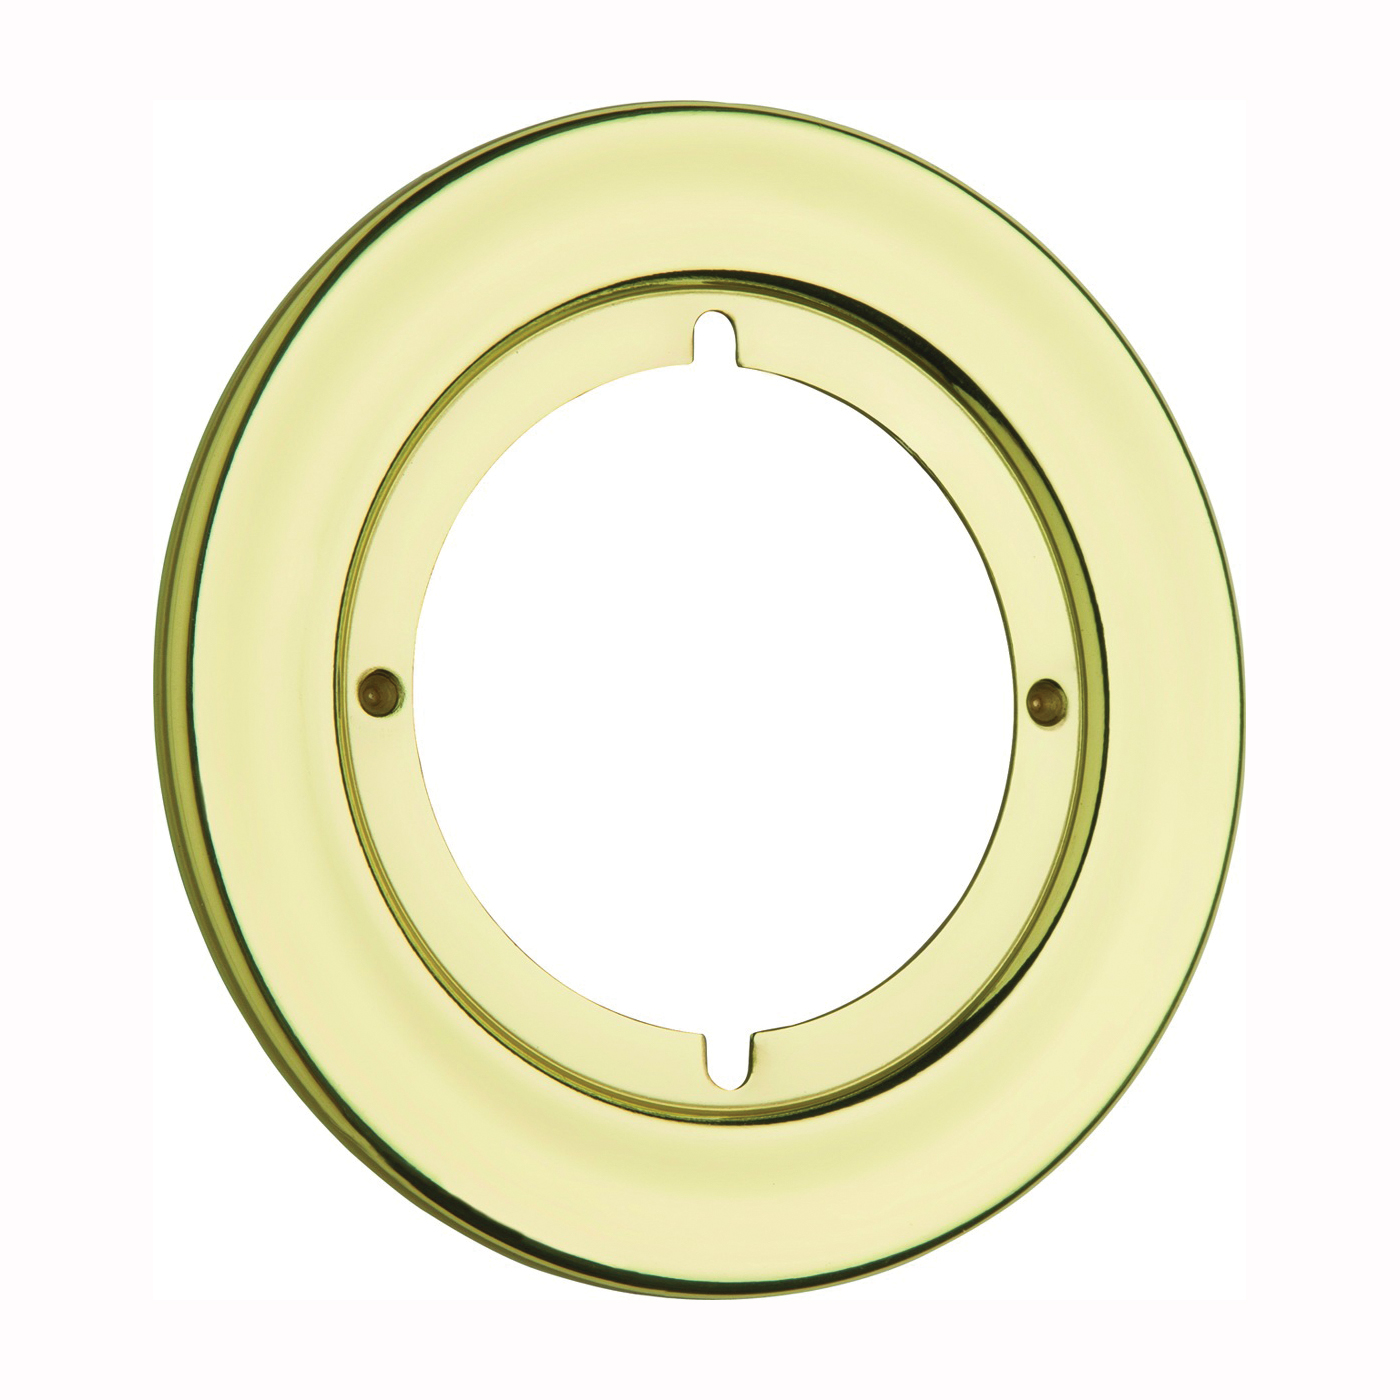 Picture of Kwikset 293 3CP Rosette Trim, Polished Brass, For: 2-3/8 or 2-3/4 in Backset